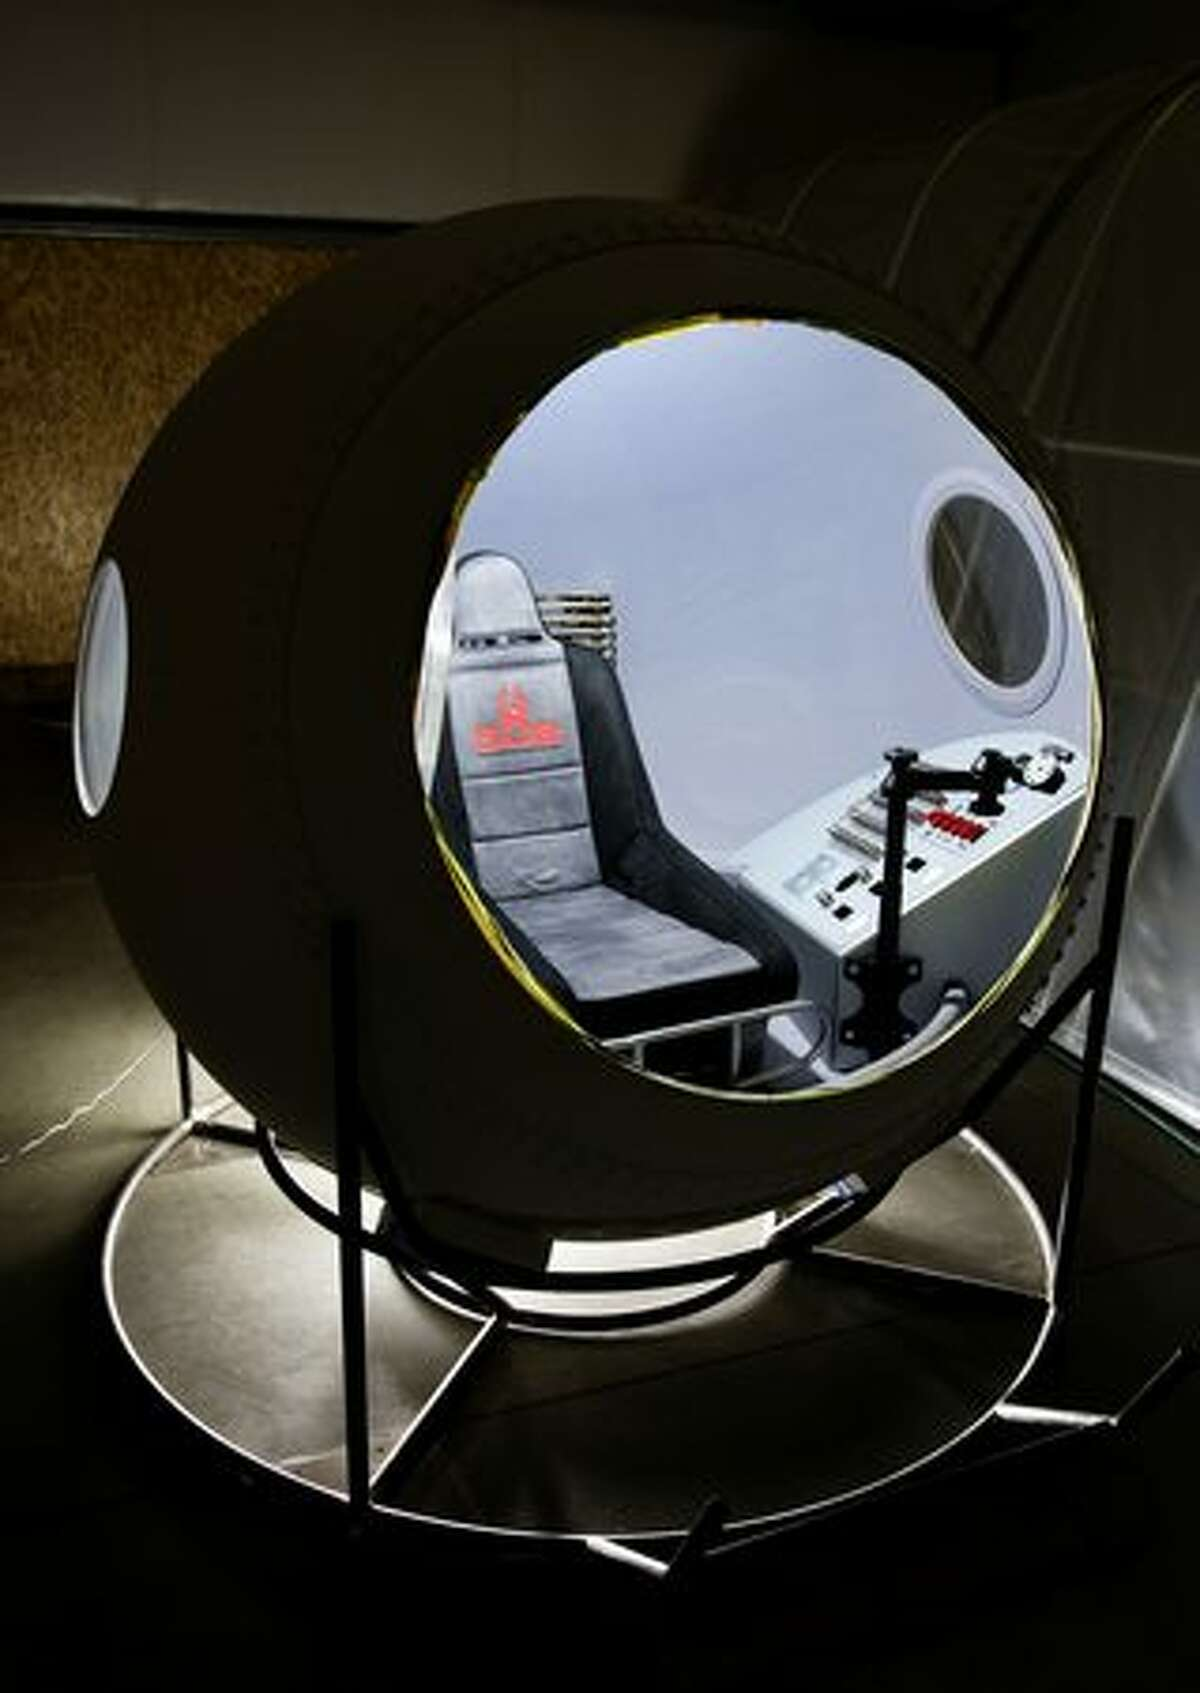 Capsule. (Garth Milan/Red Bull Stratos)